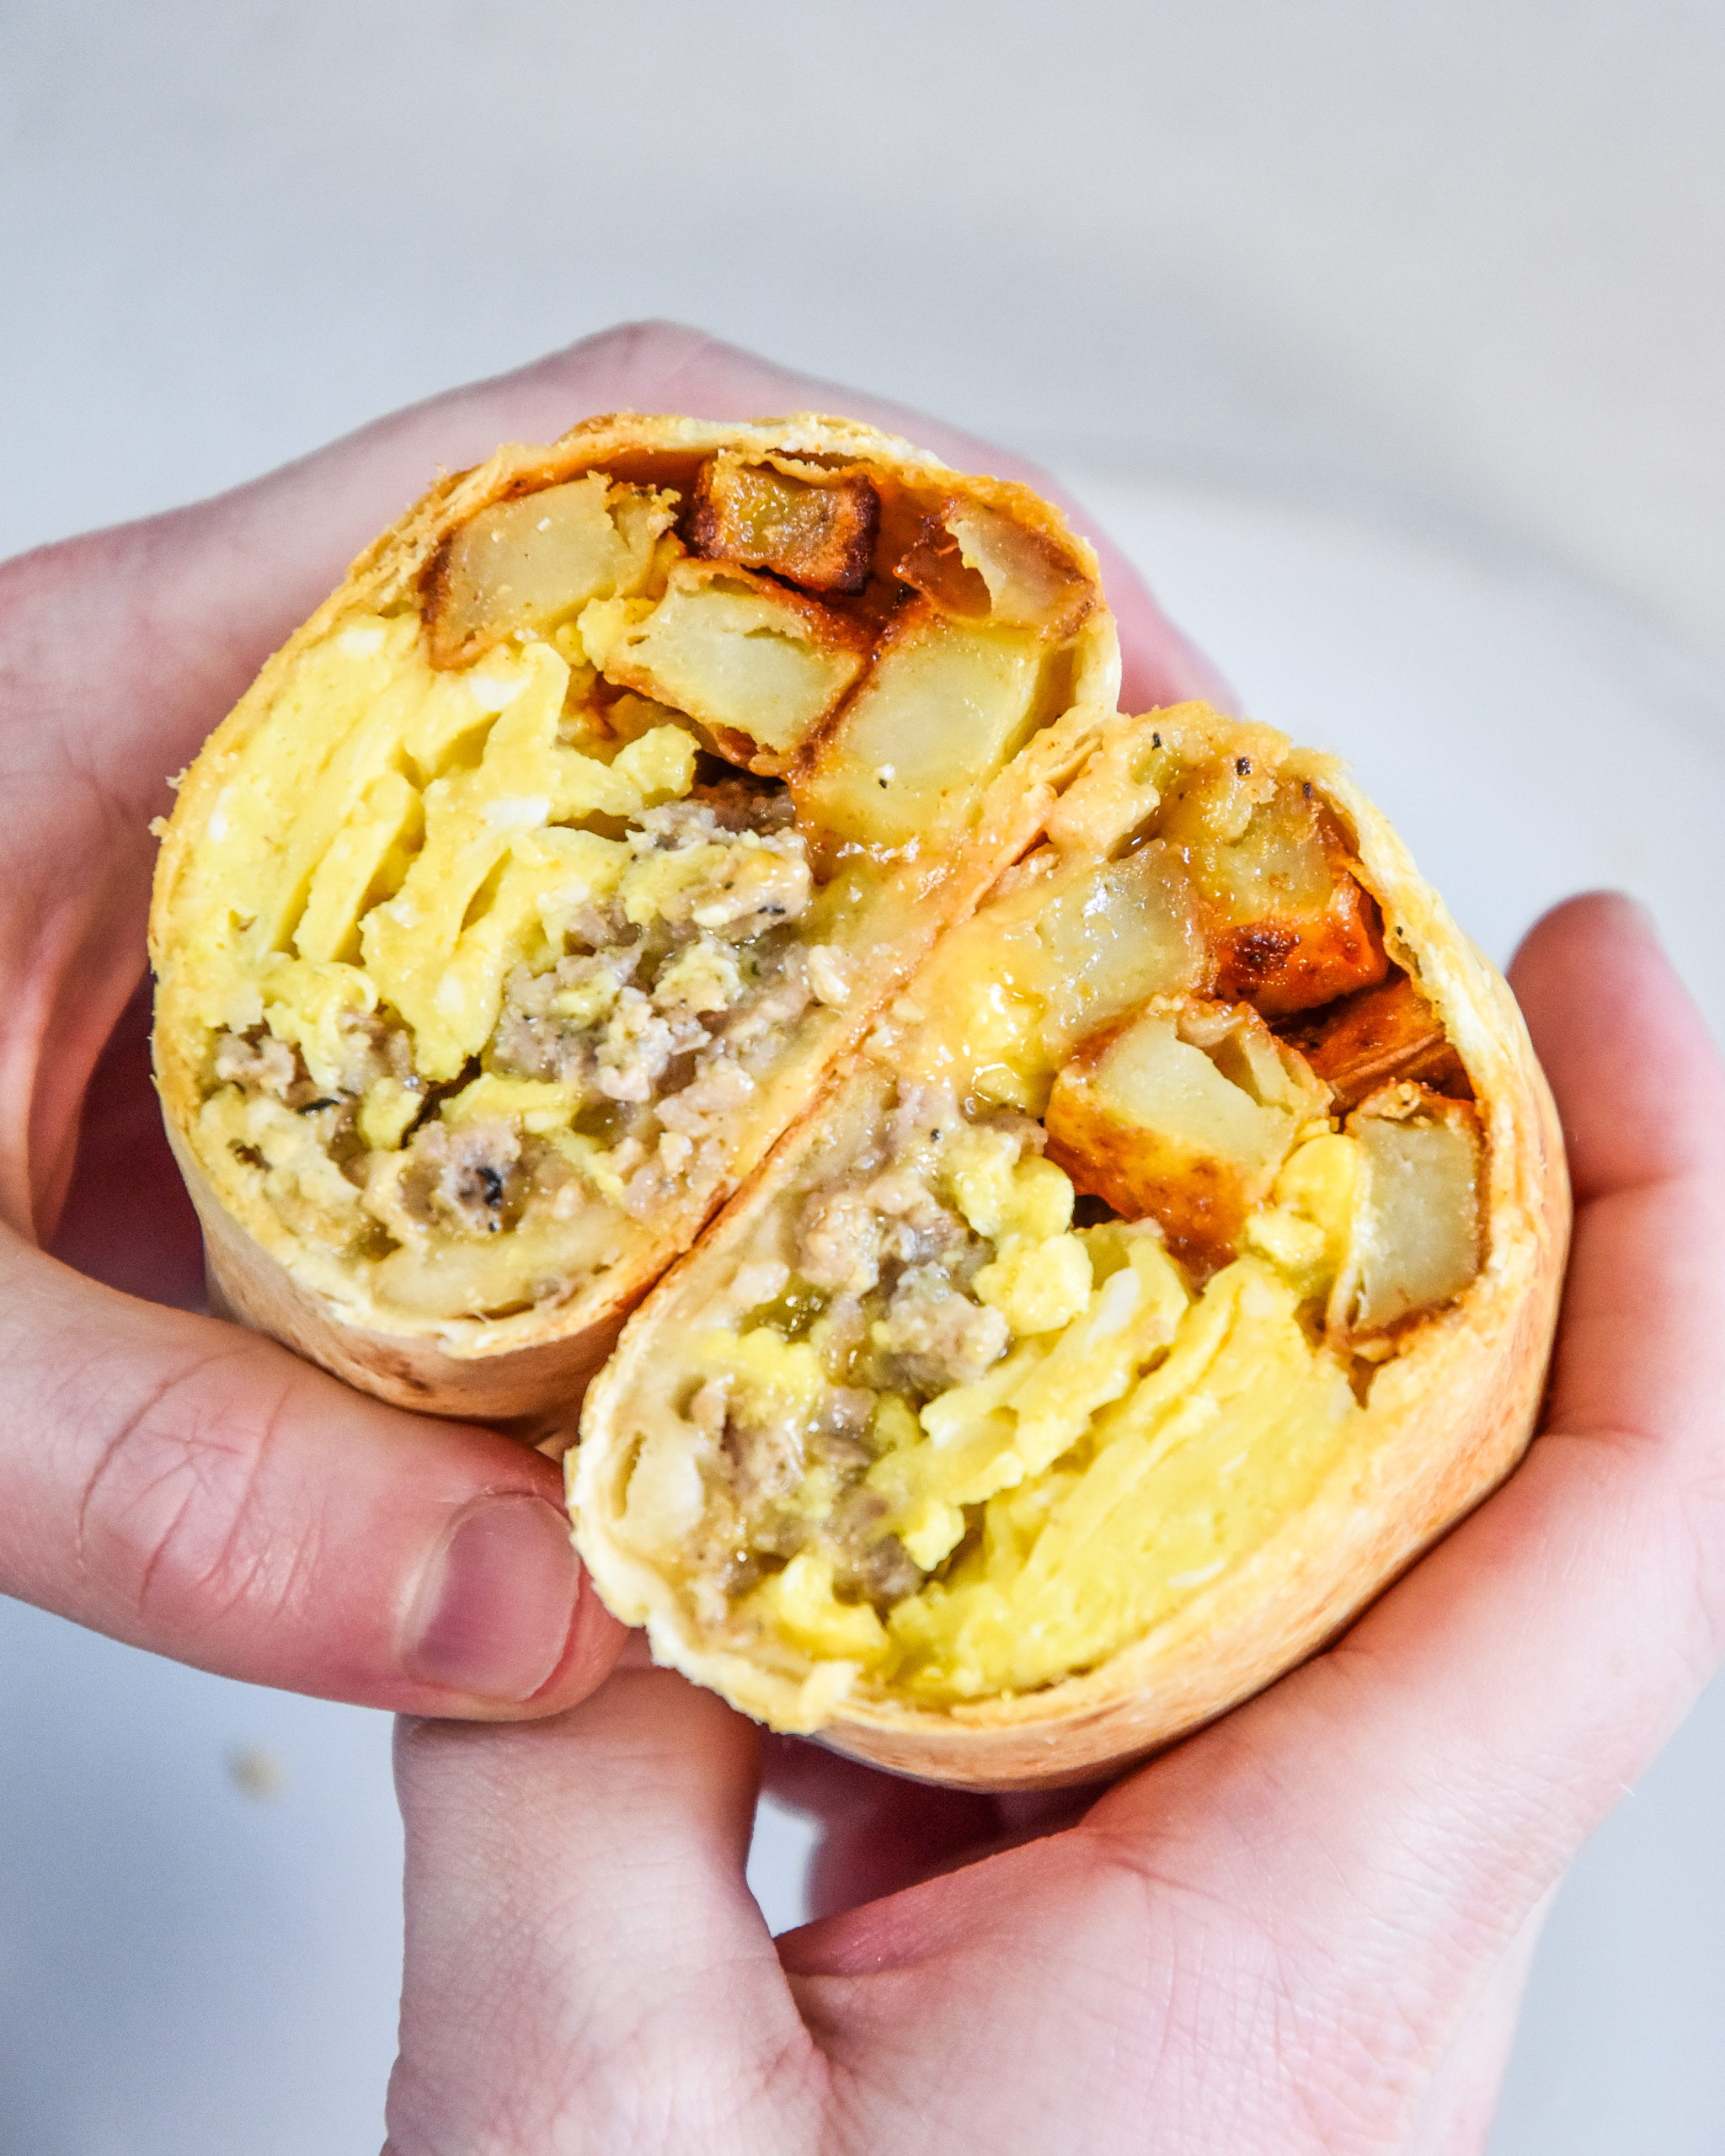 an air fryer breakfast burrito cut in half in someone's hands